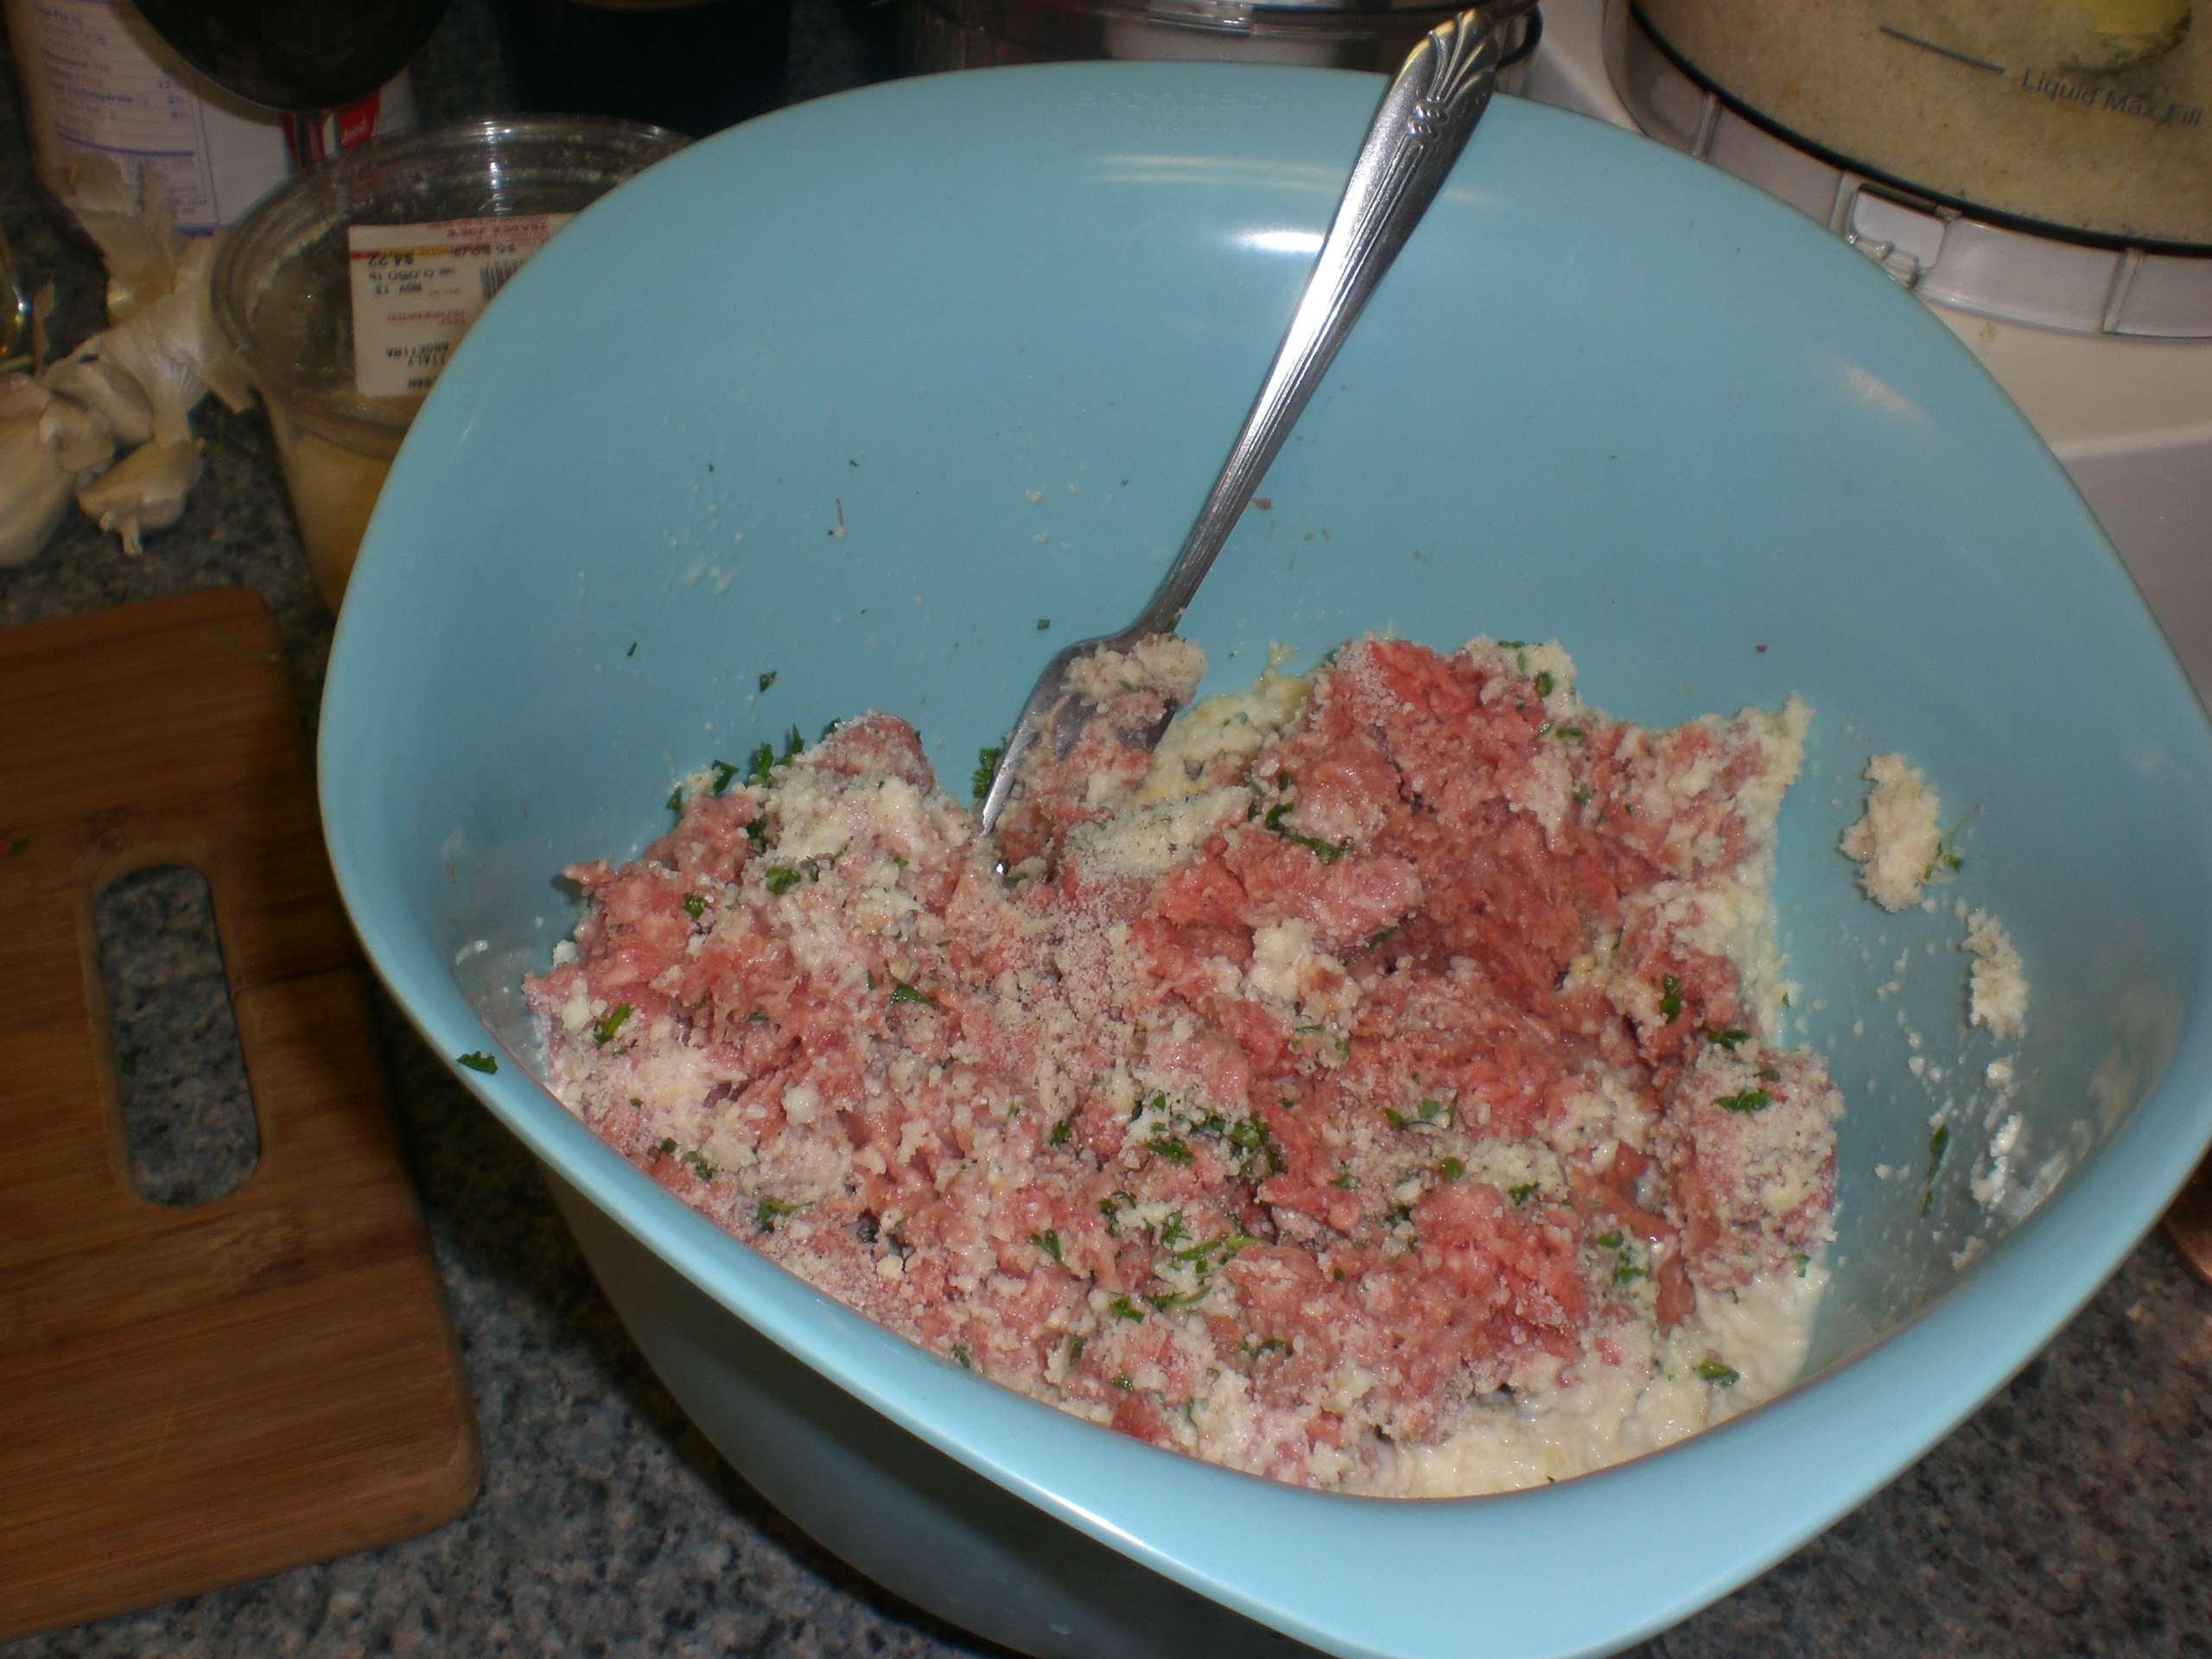 Meatball FAIL? | The Internet Food Association